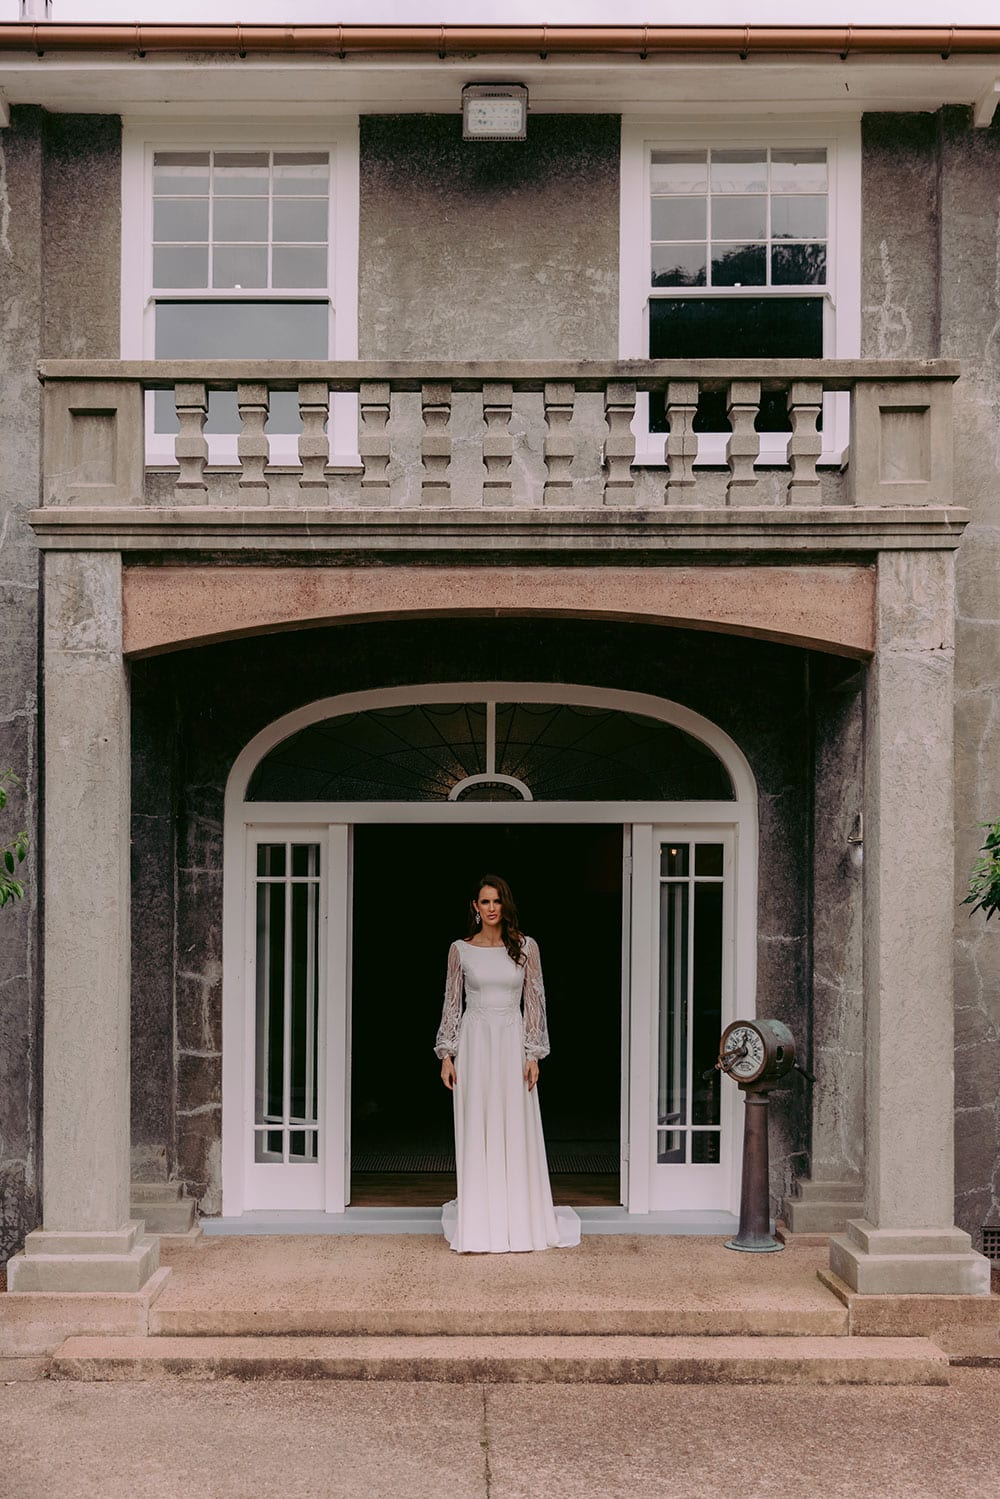 Shiloh Wedding gown from Vinka Design - Beautiful wedding dress with fitted bodice and demure boat neckline, complemented with an open back. Sheer lace sleeves tapered at the wrist with tiny pearl buttons. Lace appliqued waist and train. Model wearing gown in entrance of old heritage building.